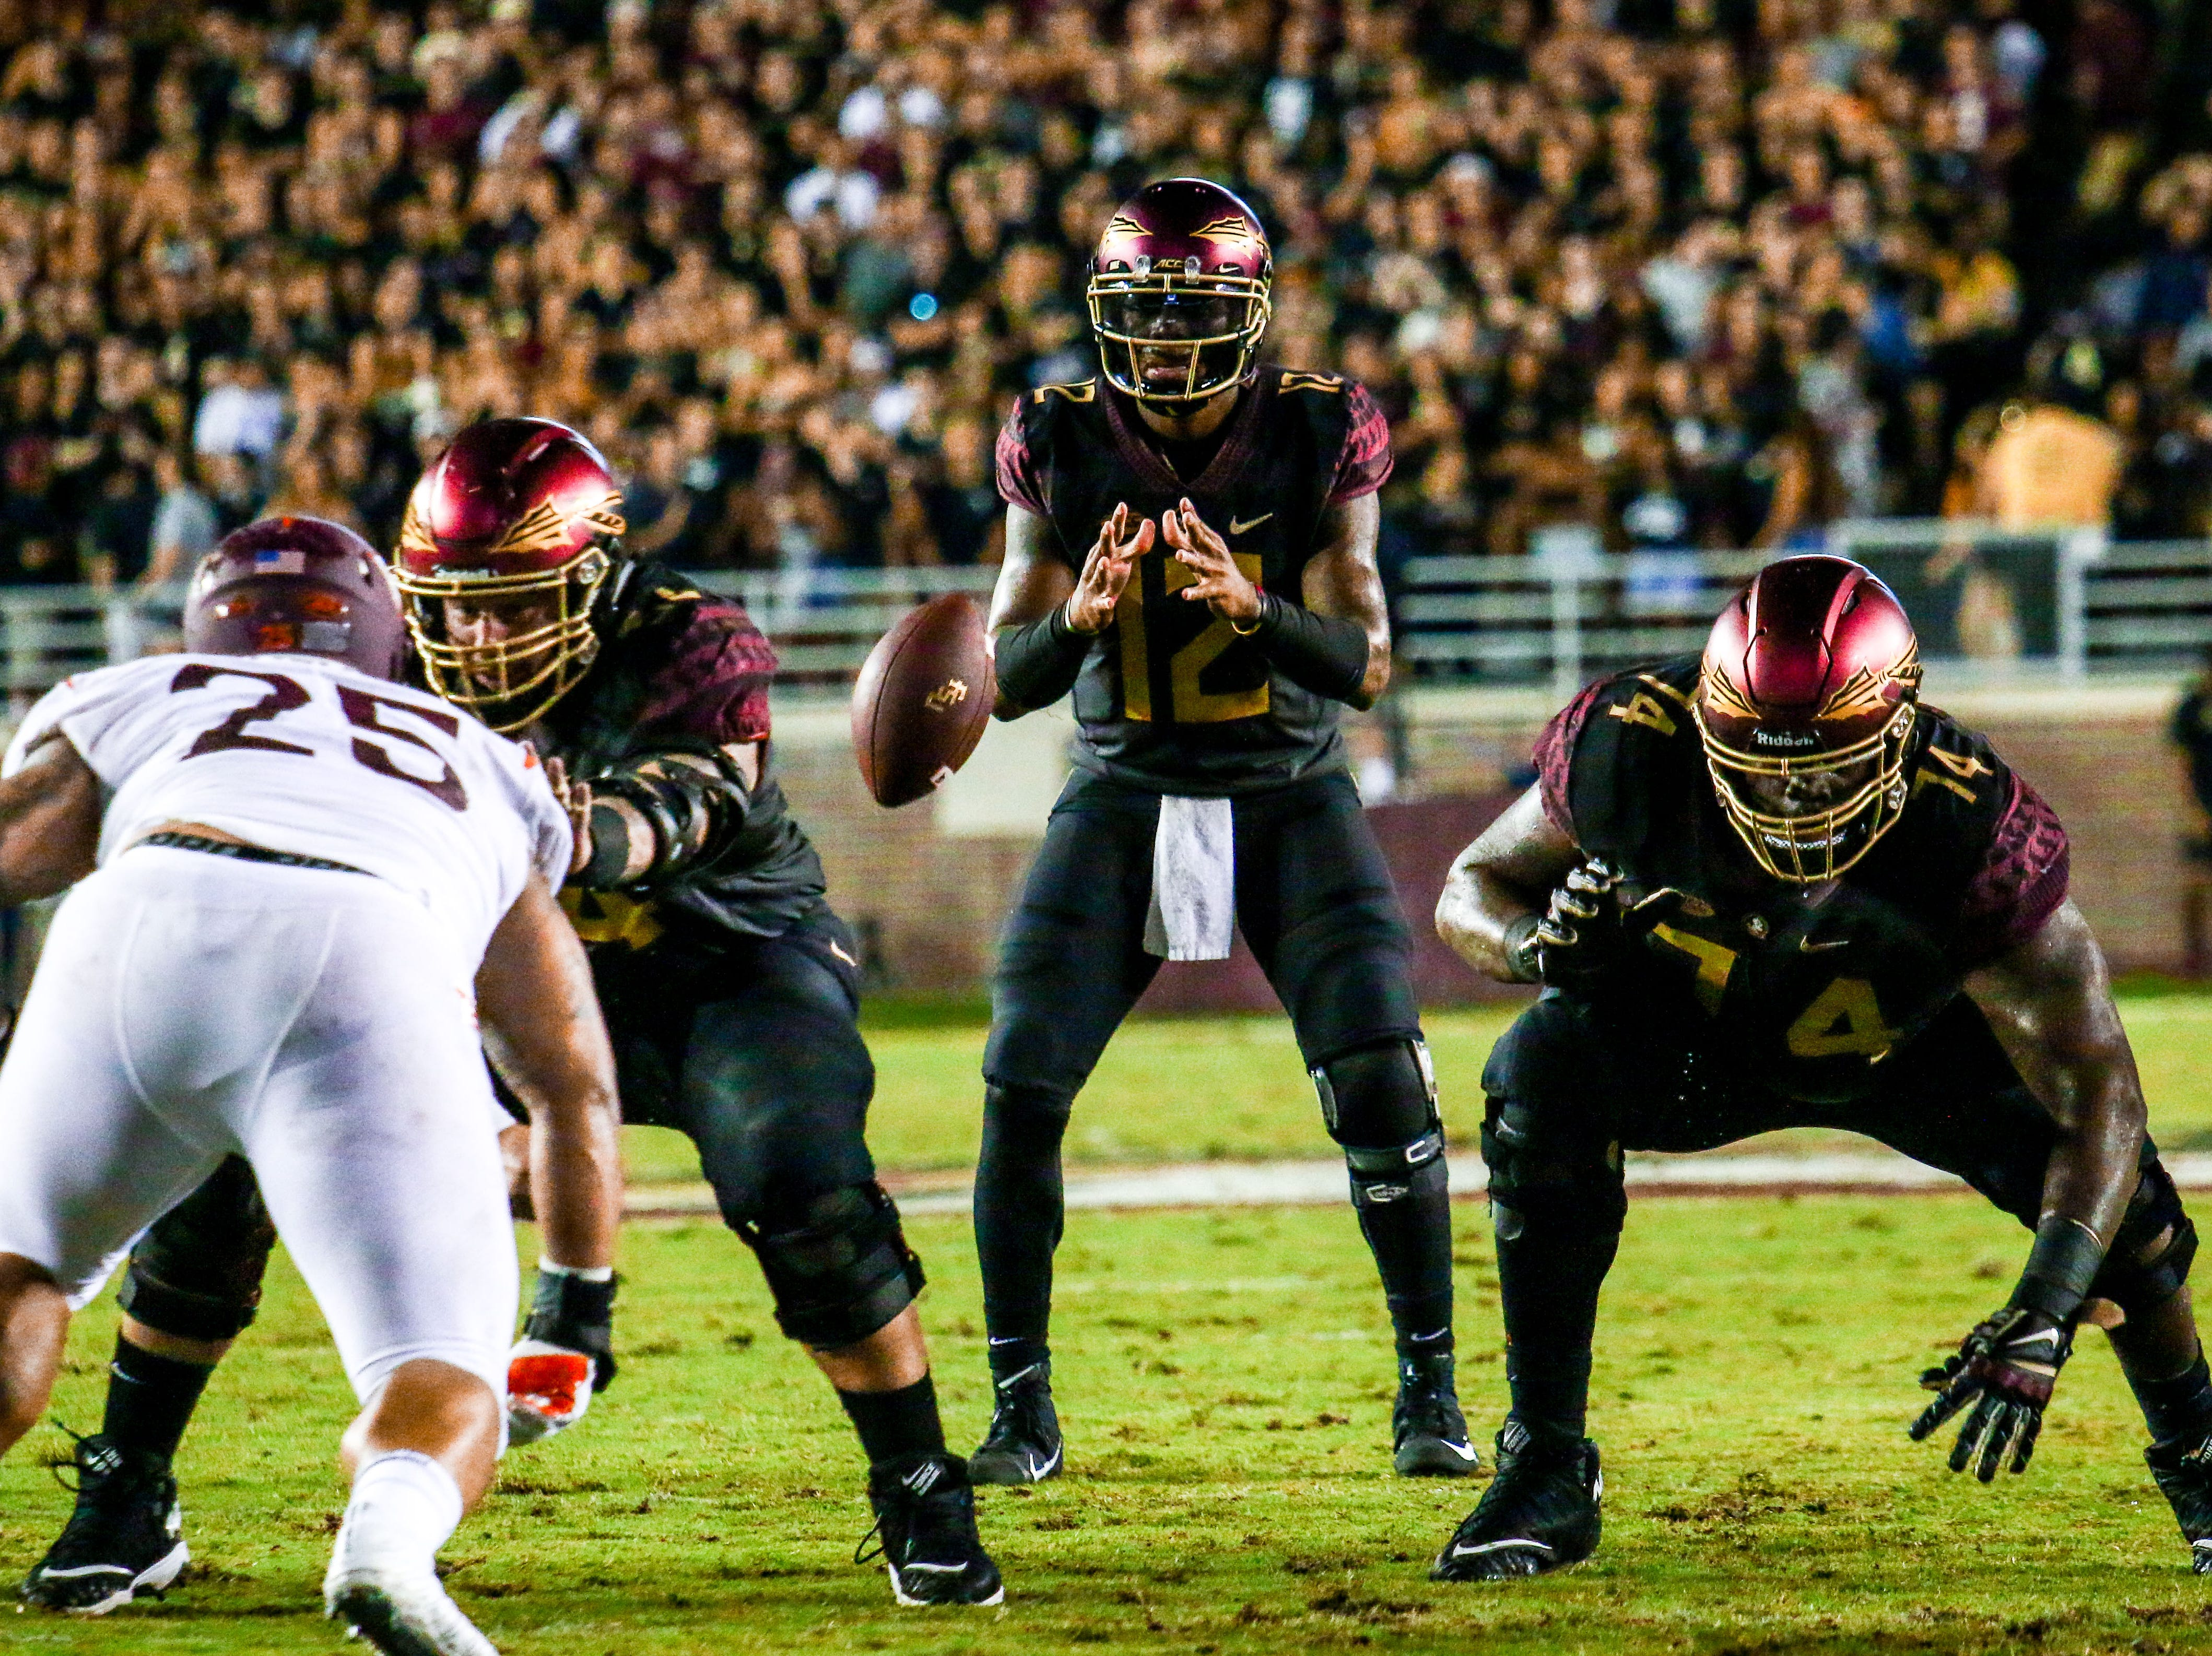 QB Deondre Francois (12) made his return from injury after being sidelined last season because of a patella injury in his left knee. Cobwebs were apparent as Francois would go on to throw 3 interceptions on Monday, September 3rd.